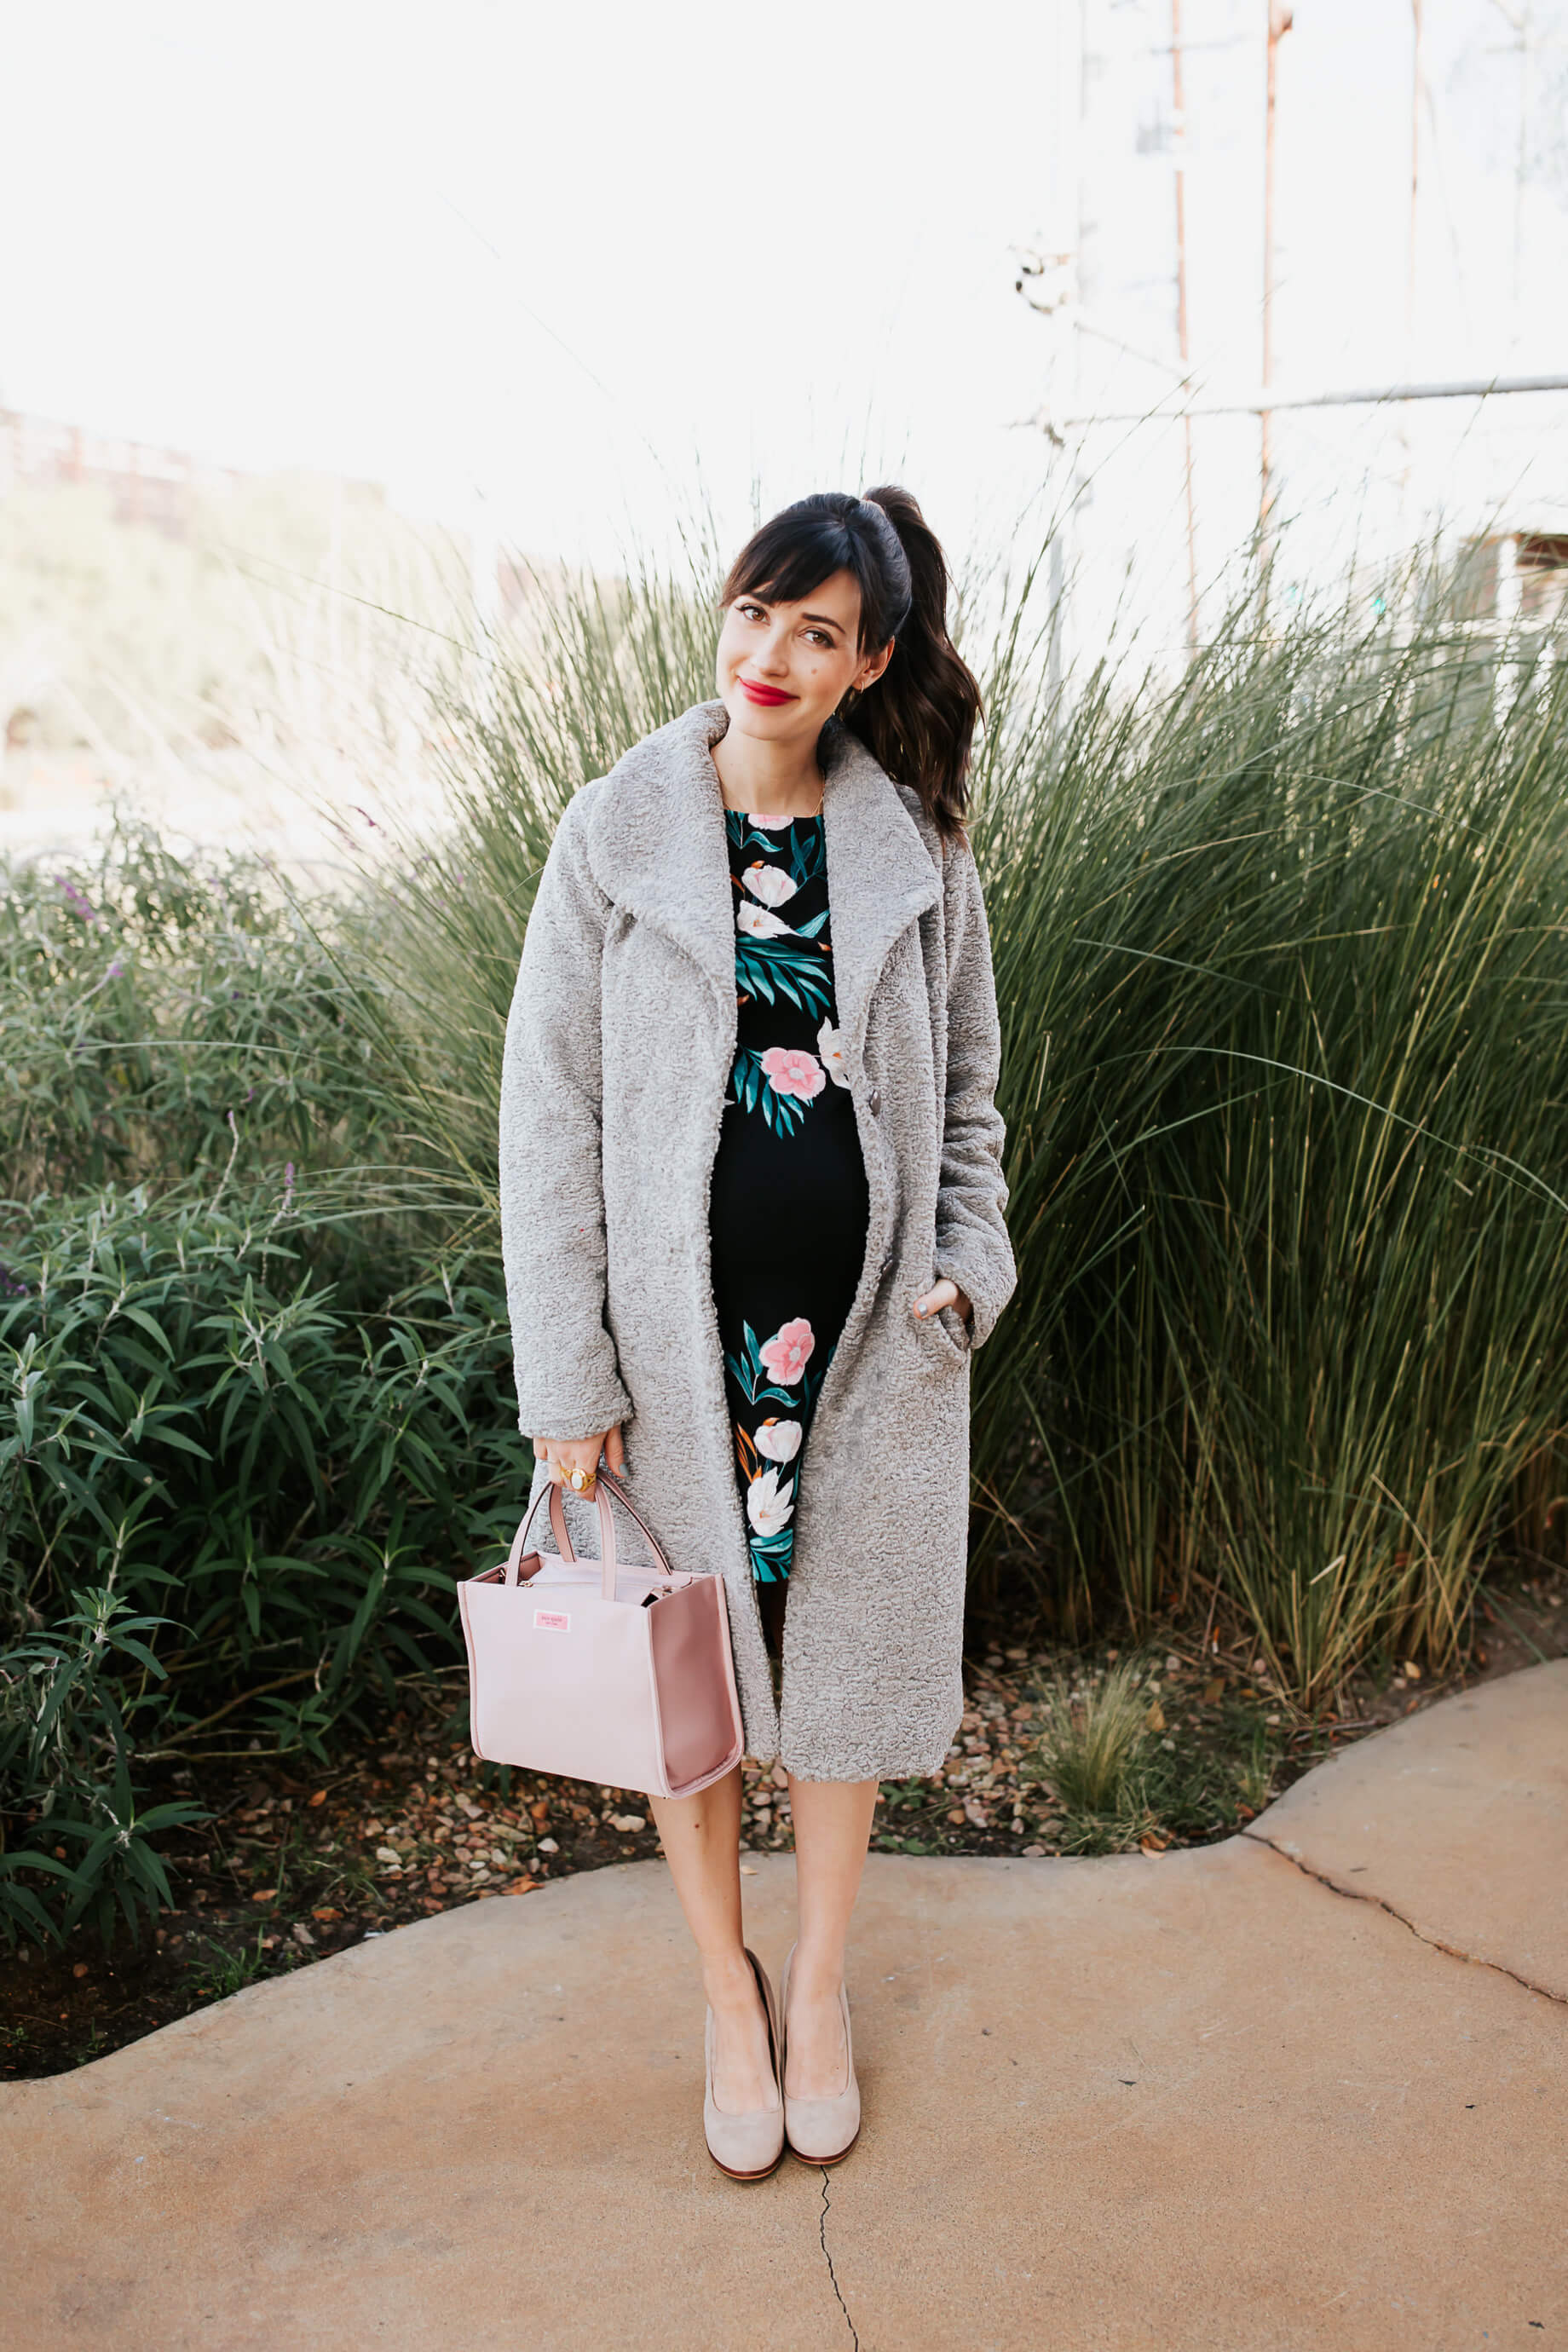 Why I am Obsessed with Winter Florals